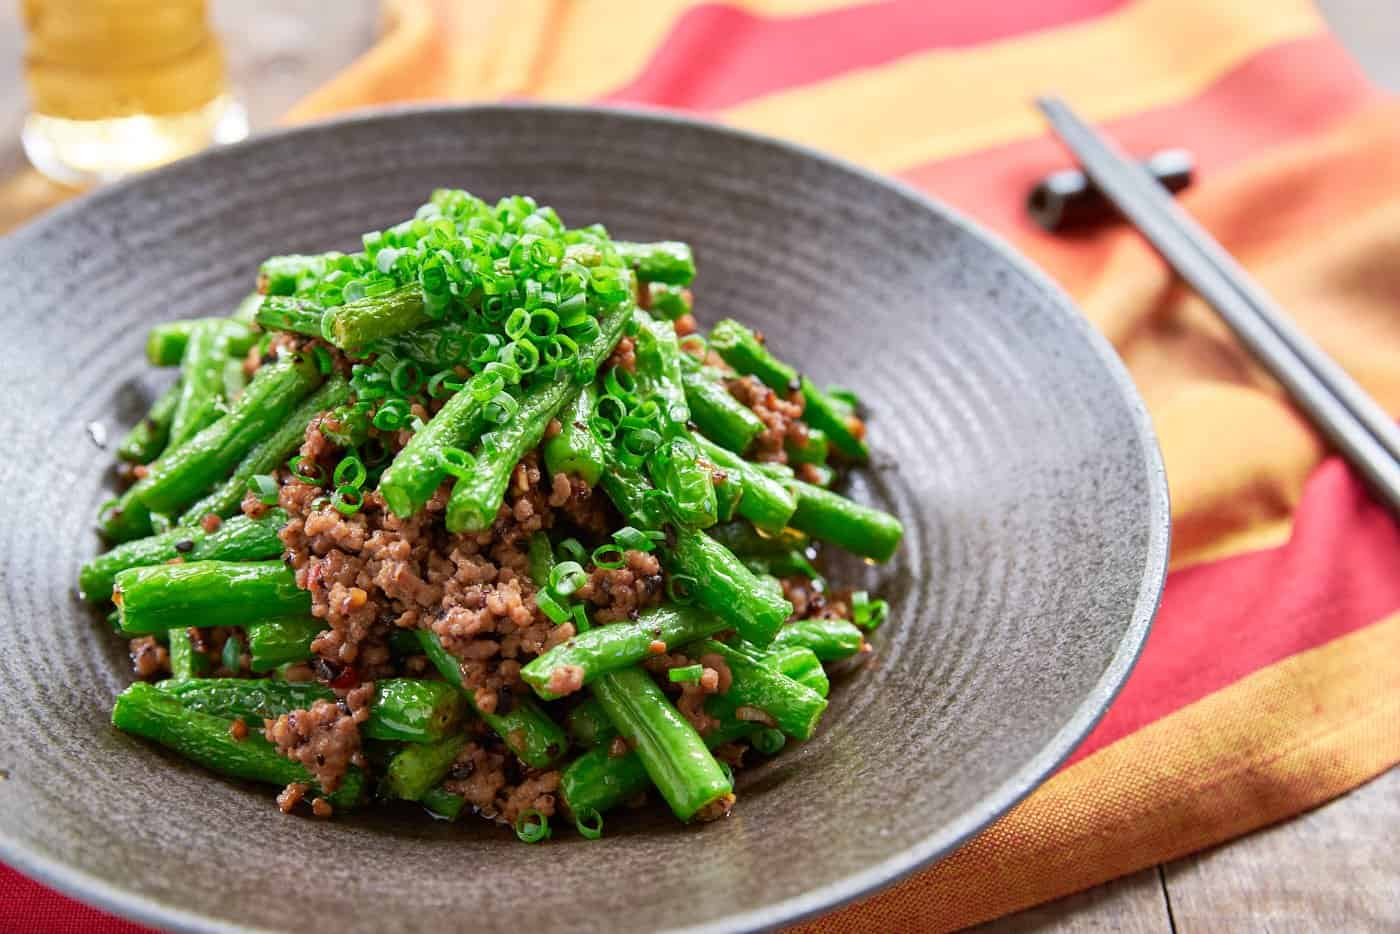 This delicious green bean stir-fry comes together in just mimnutes and yet it's loaded with tender green beans and ground pork seasoend with garlic, black beans and chili paste.